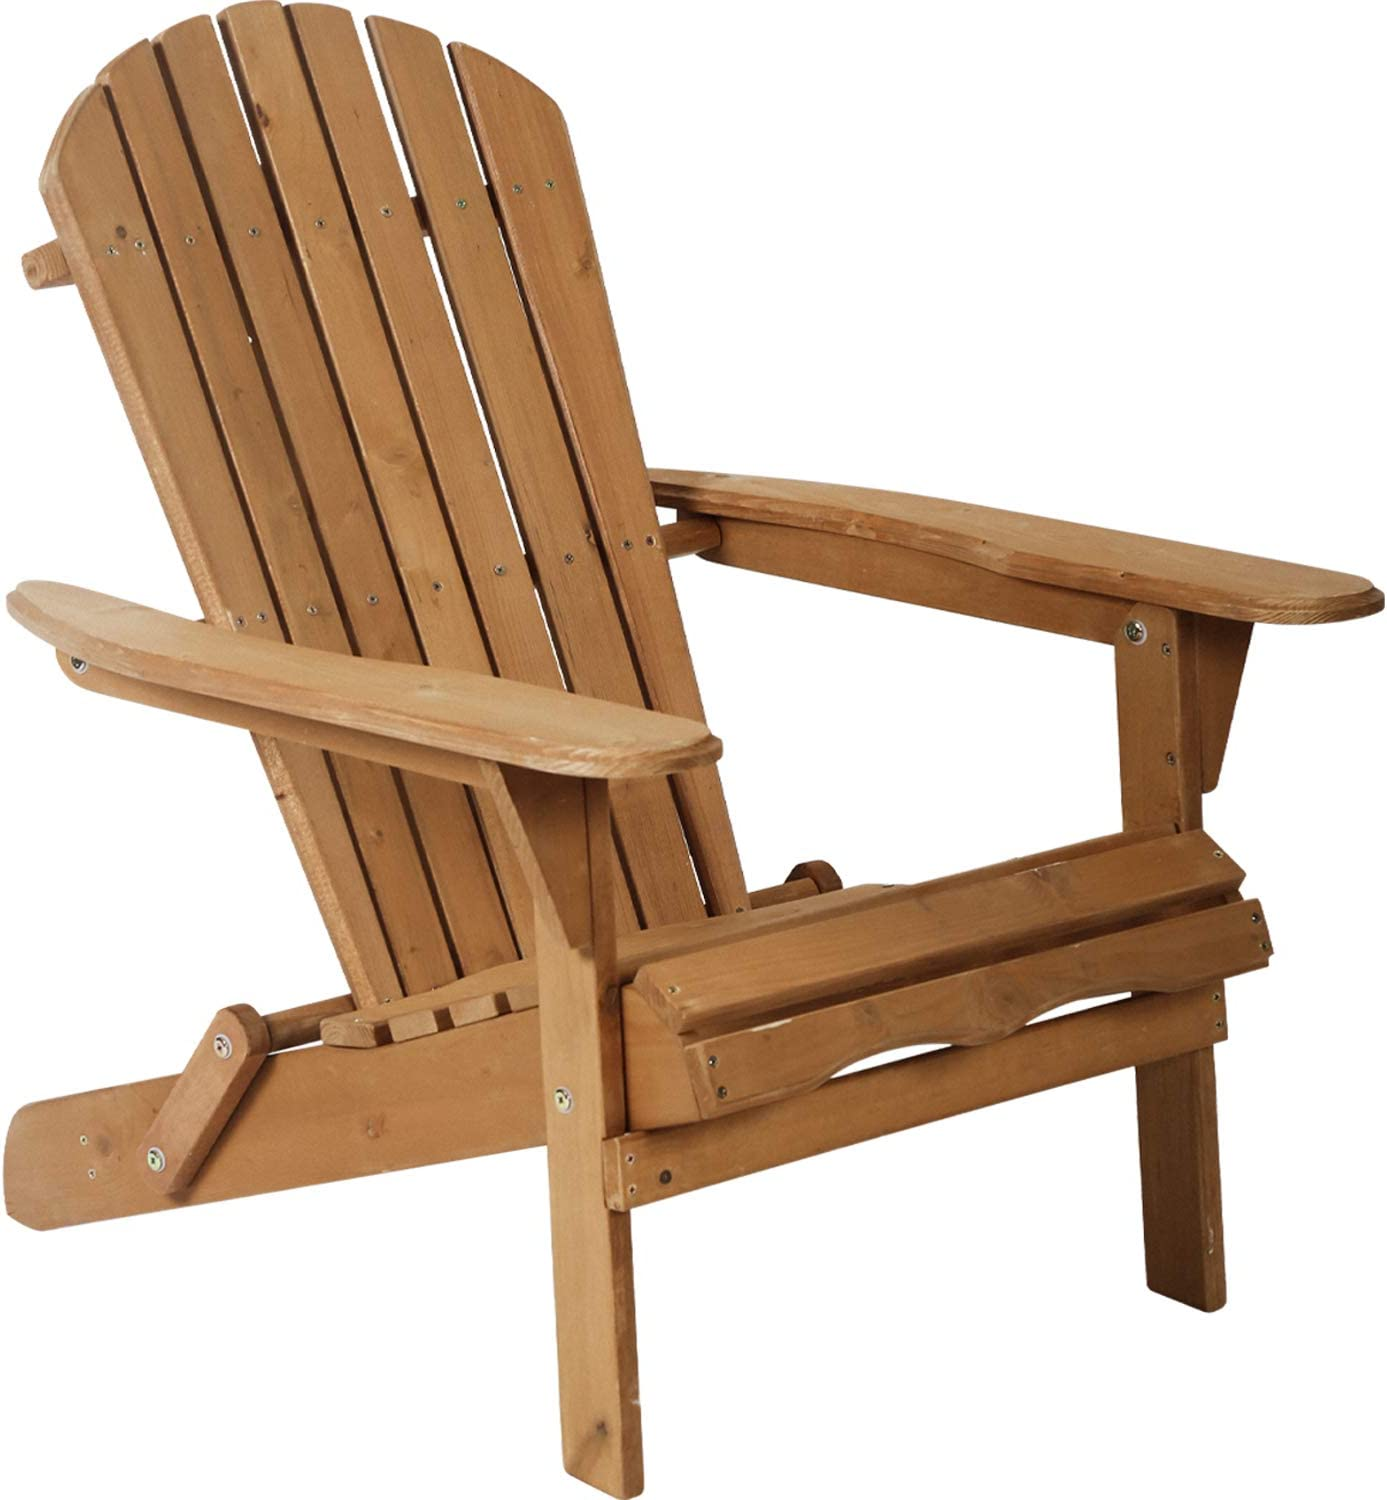 Adirondack Chair Patio Chairs Lawn Chair Folding Adirondack Chair Outdoor Chairs Patio Seating Fire Pit Chairs Wood Chairs For Adults Yard Garden W Natural Finish Furniture Decor